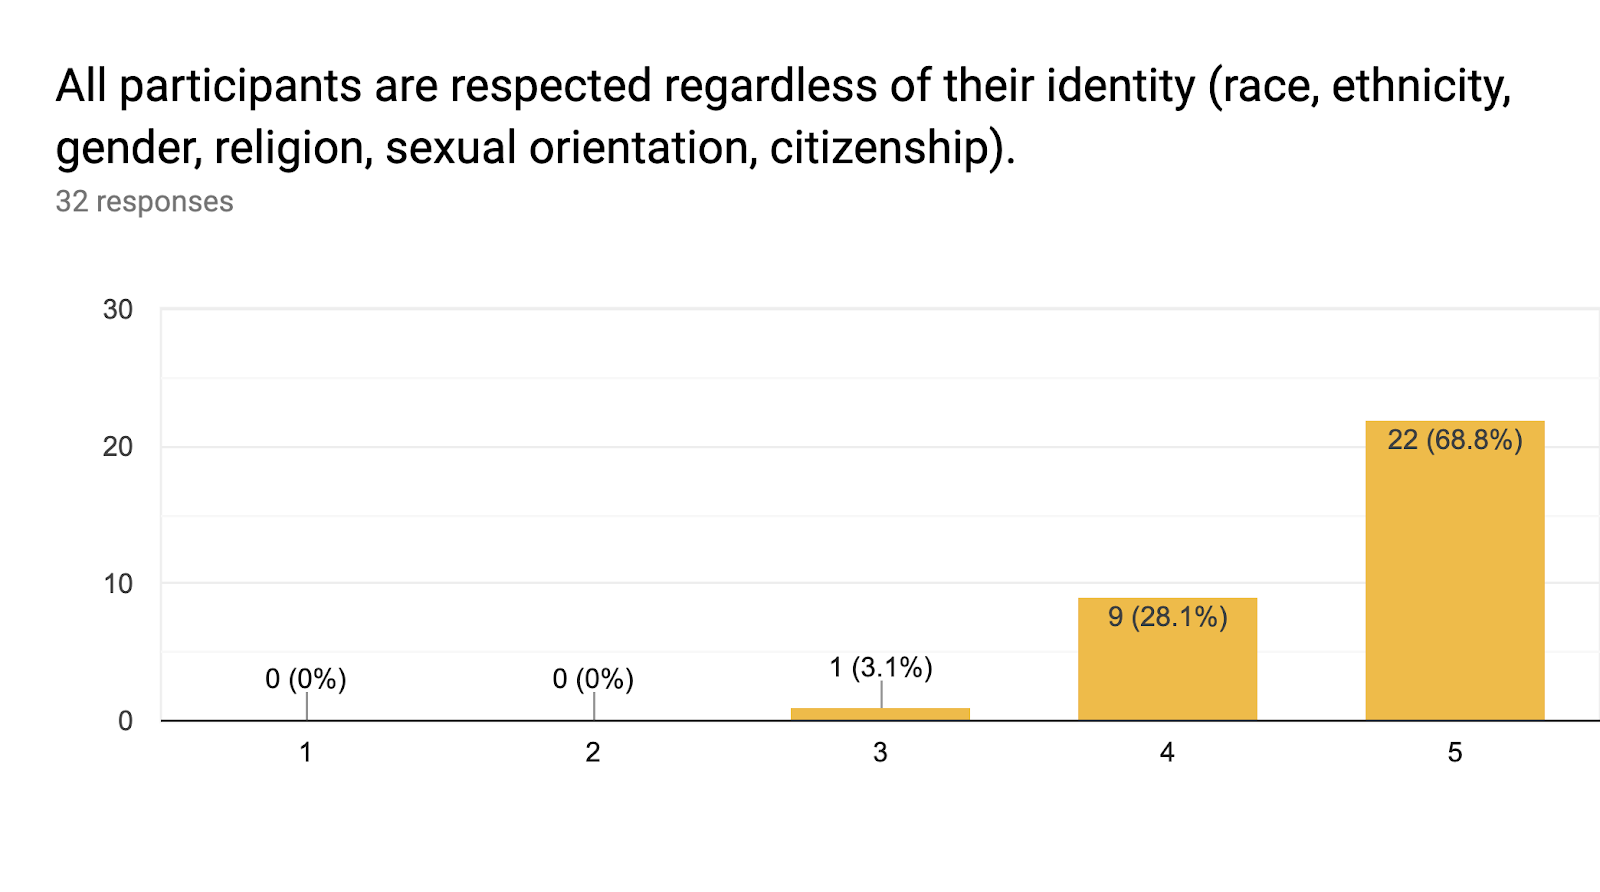 Forms response chart. Question title: All participants are respected regardless of their identity (race, ethnicity, gender, religion, sexual orientation, citizenship).. Number of responses: 32 responses.